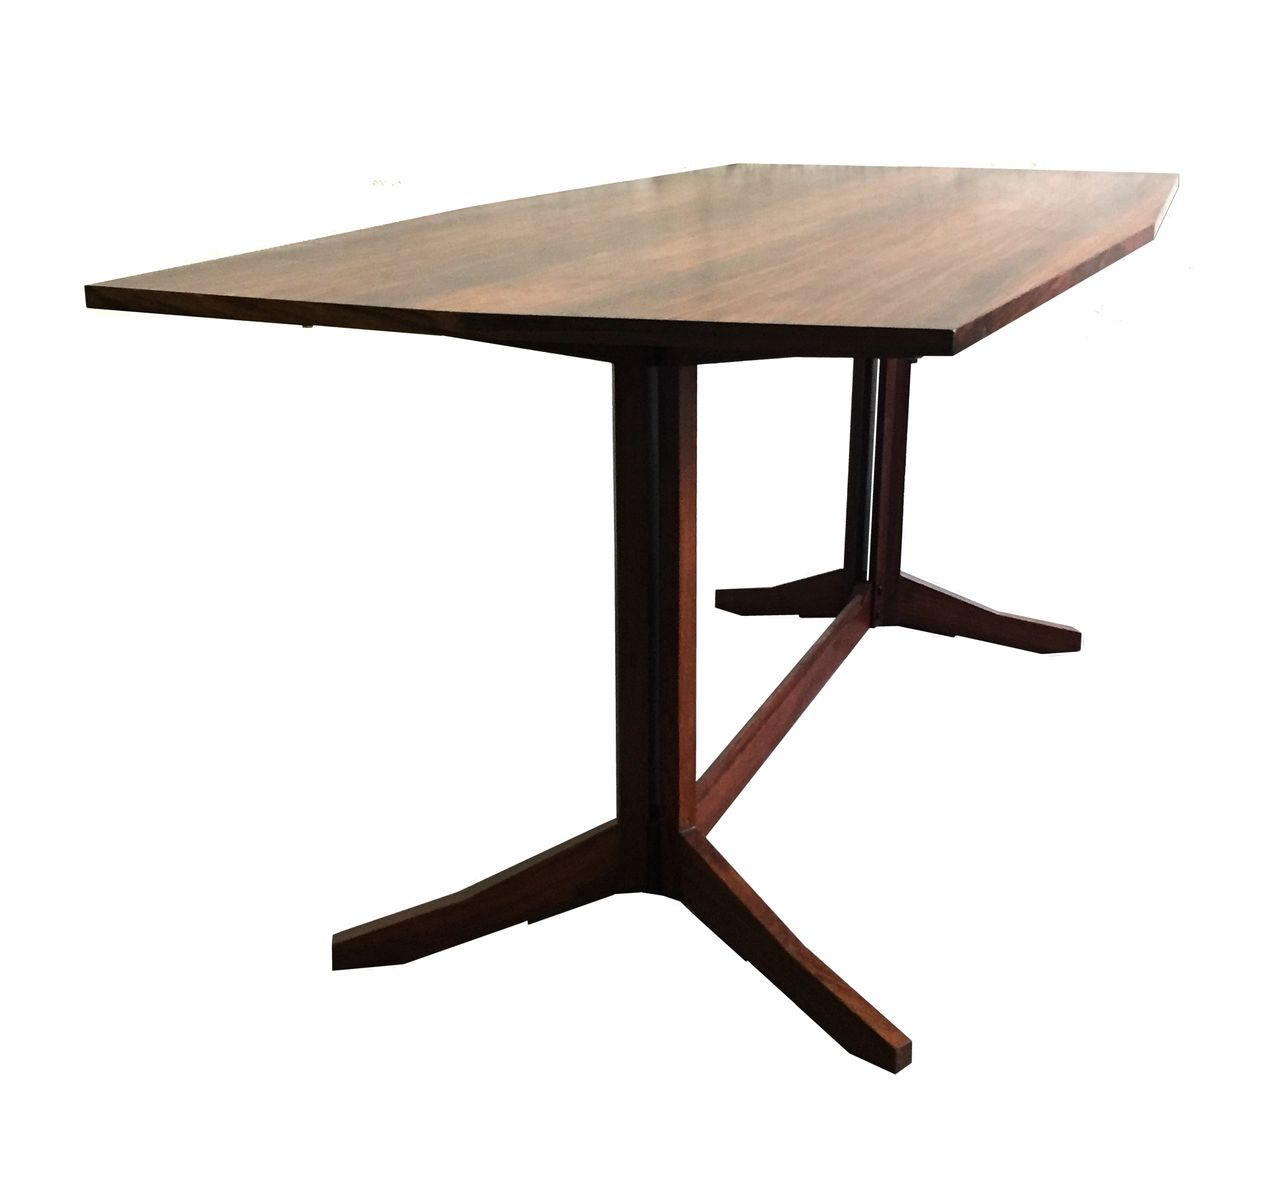 Table de salle manger en bois italie en vente sur pamono for Solde table a manger